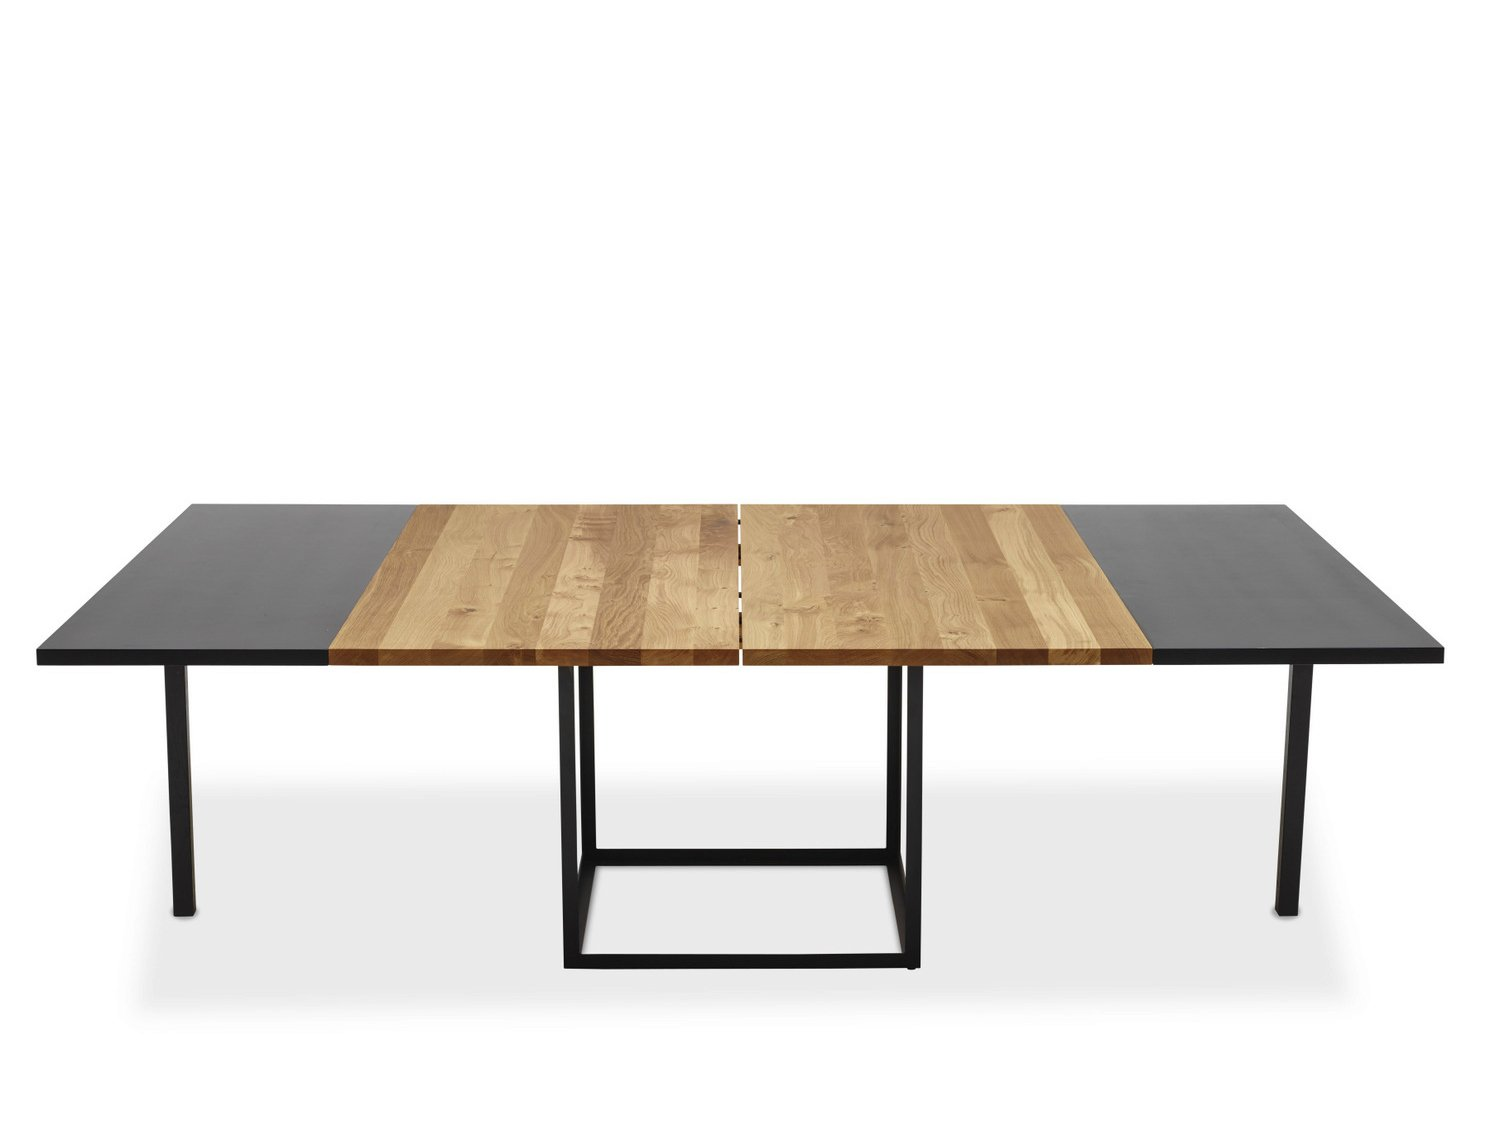 Jewel table table carr e by dk3 design s ren juul for Tavolo allungabile quadrato 120x120